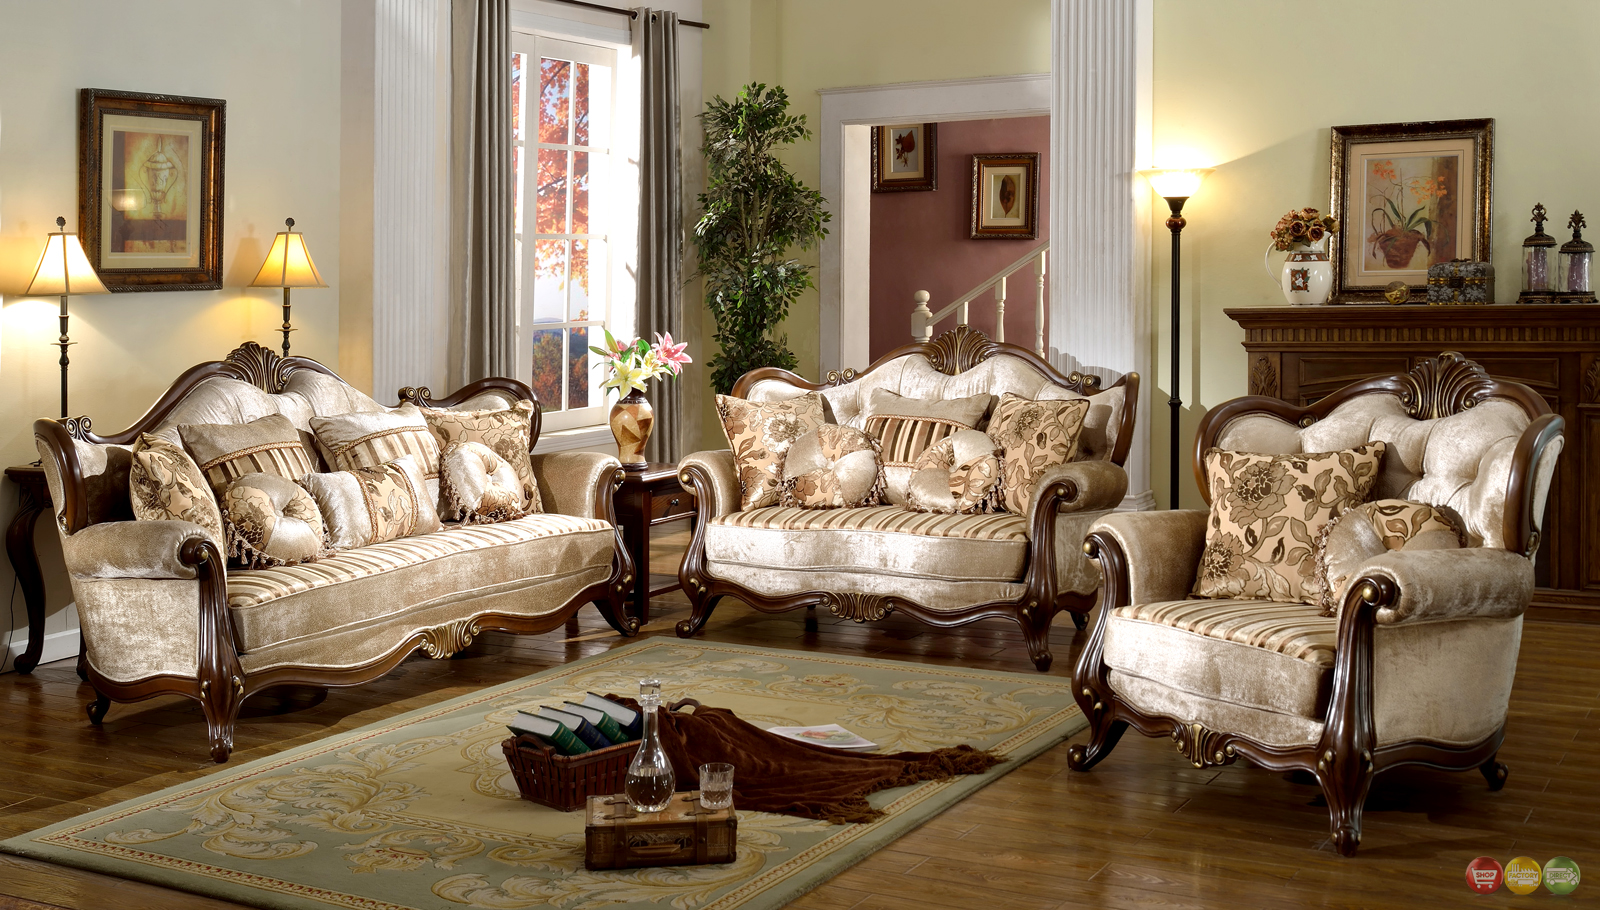 French provincial formal antique style living room Living room furniture images